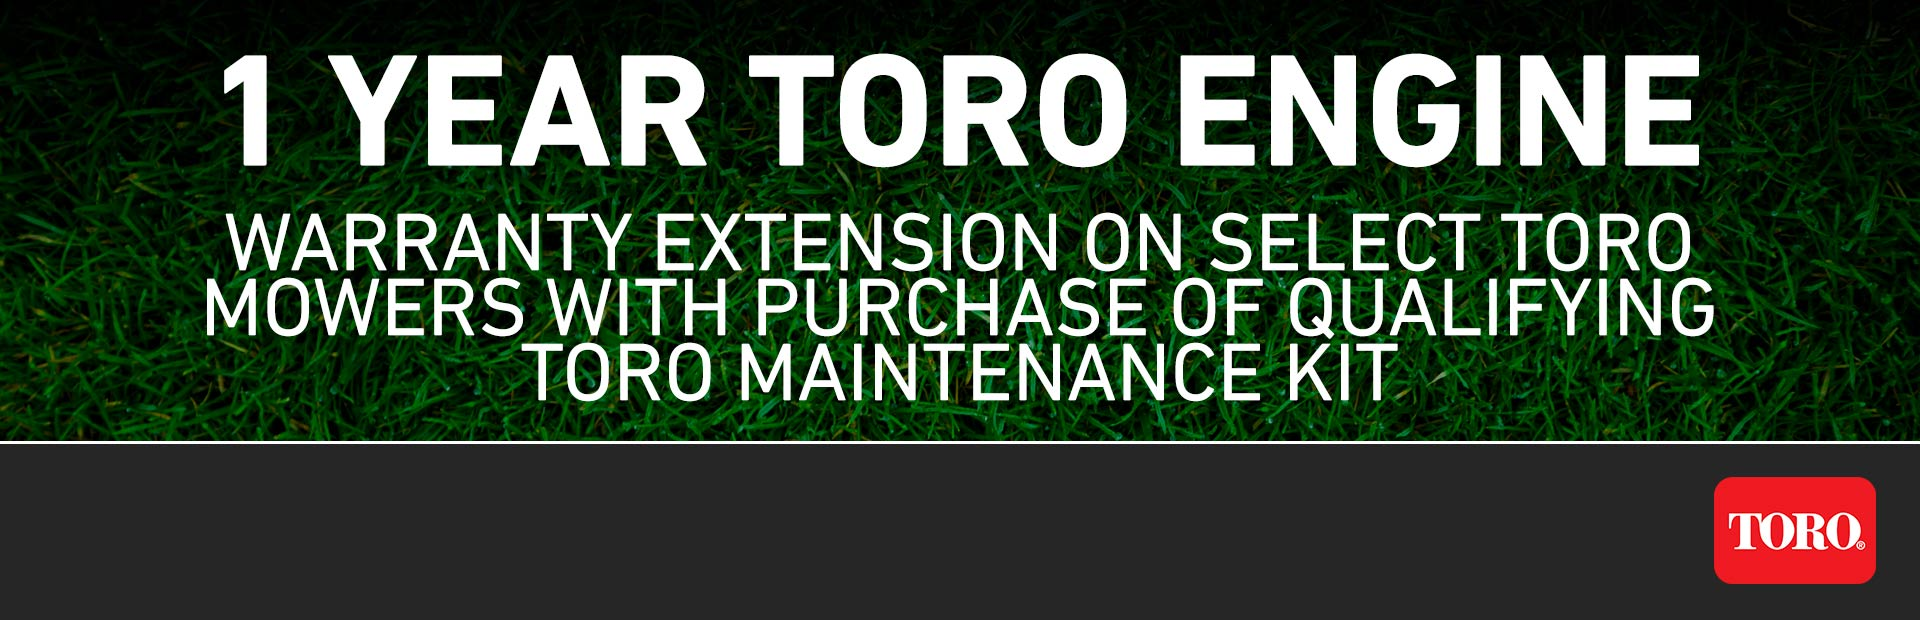 Toro: RE - FREE 1-Year Toro Engine Warranty